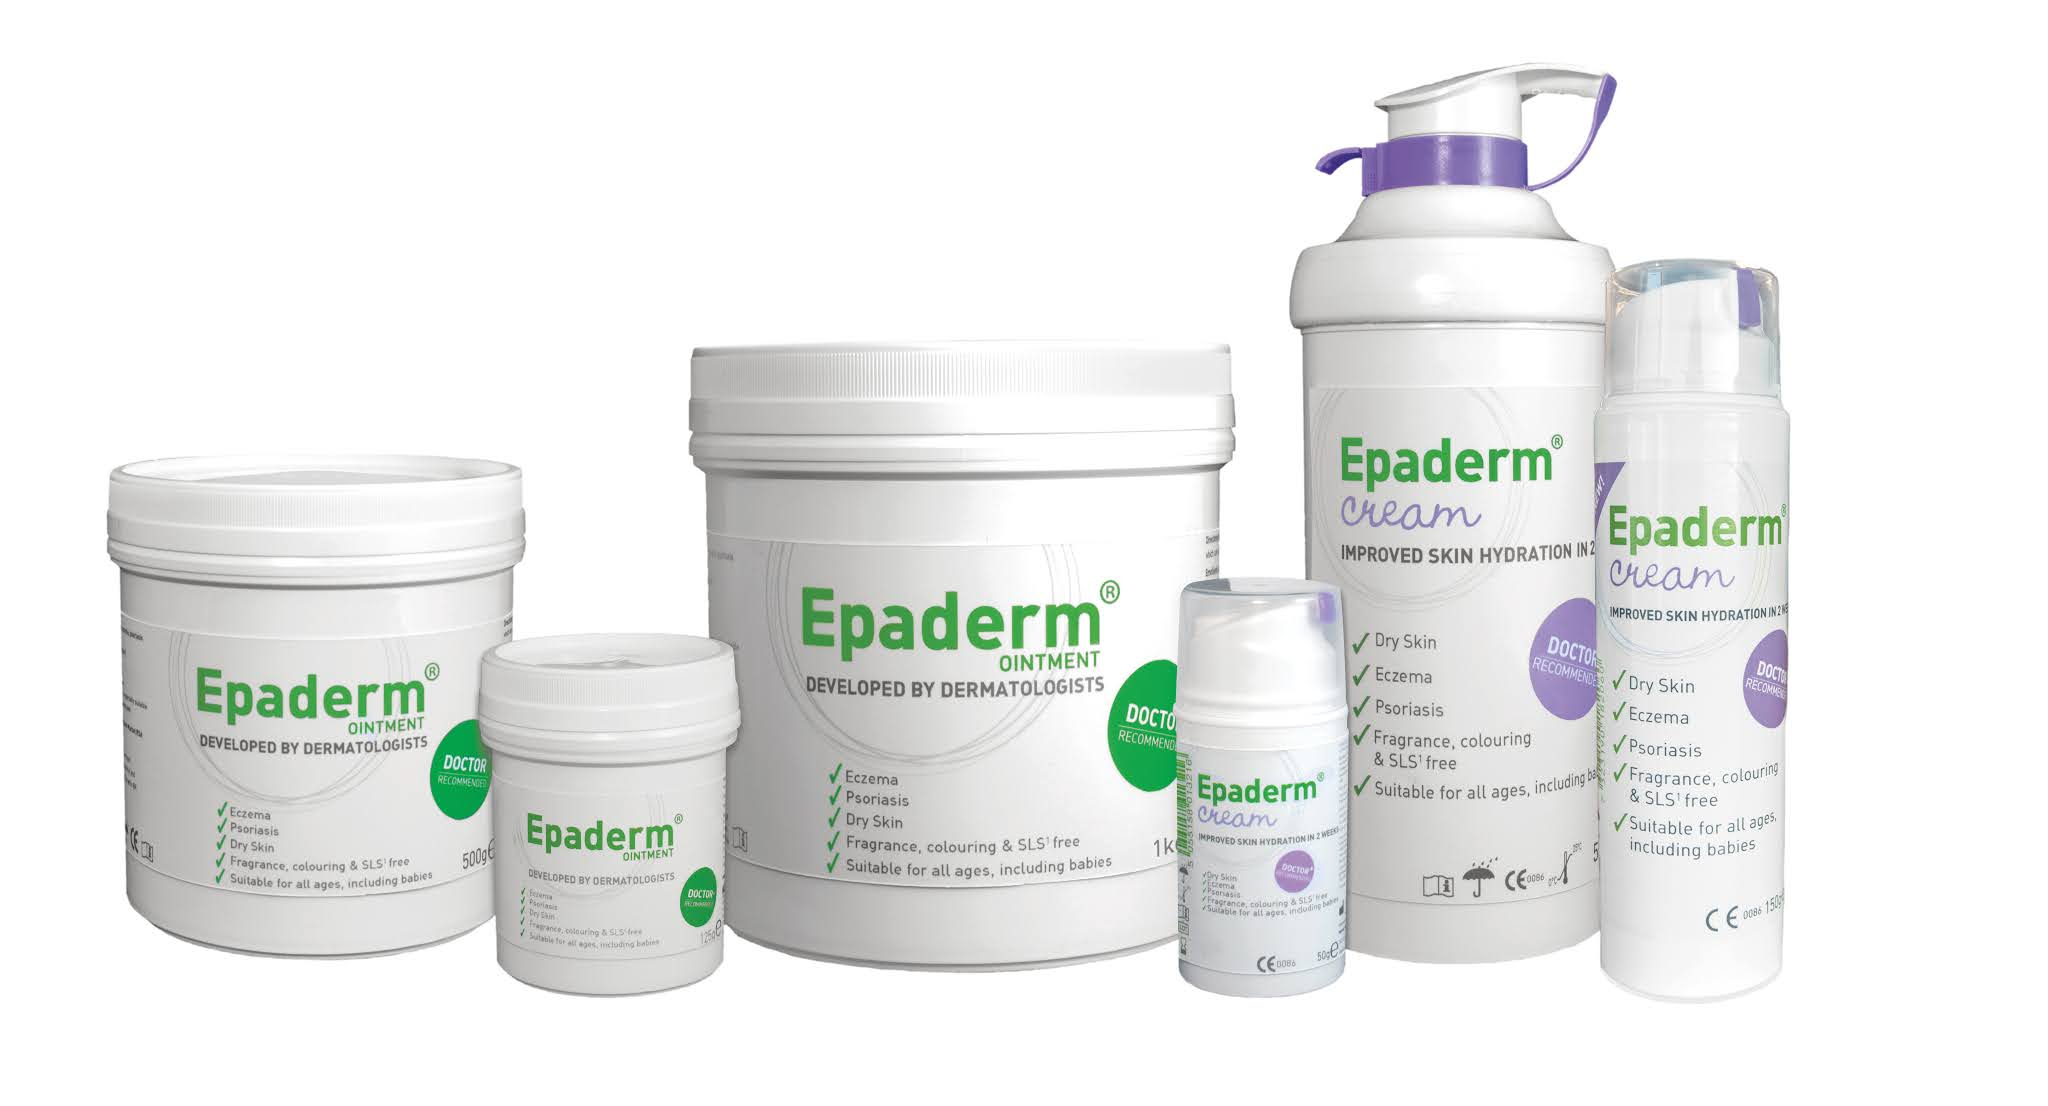 3 varying sizes tubs of Epaderm ointment and 3 tubes of Epaderm Cream